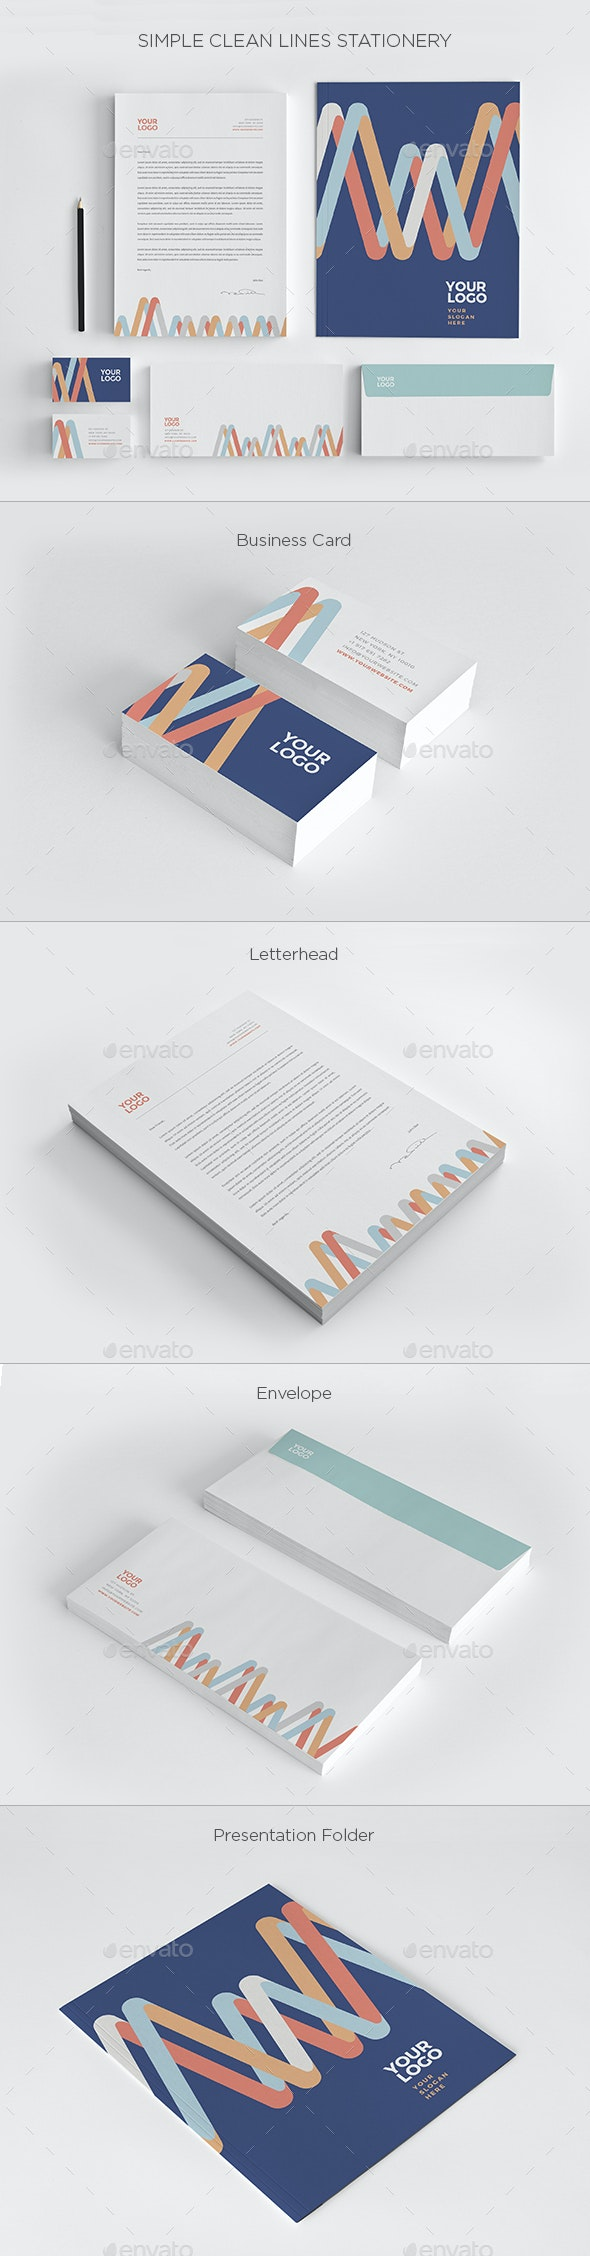 Simple Clean Lines Stationery - Stationery Print Templates